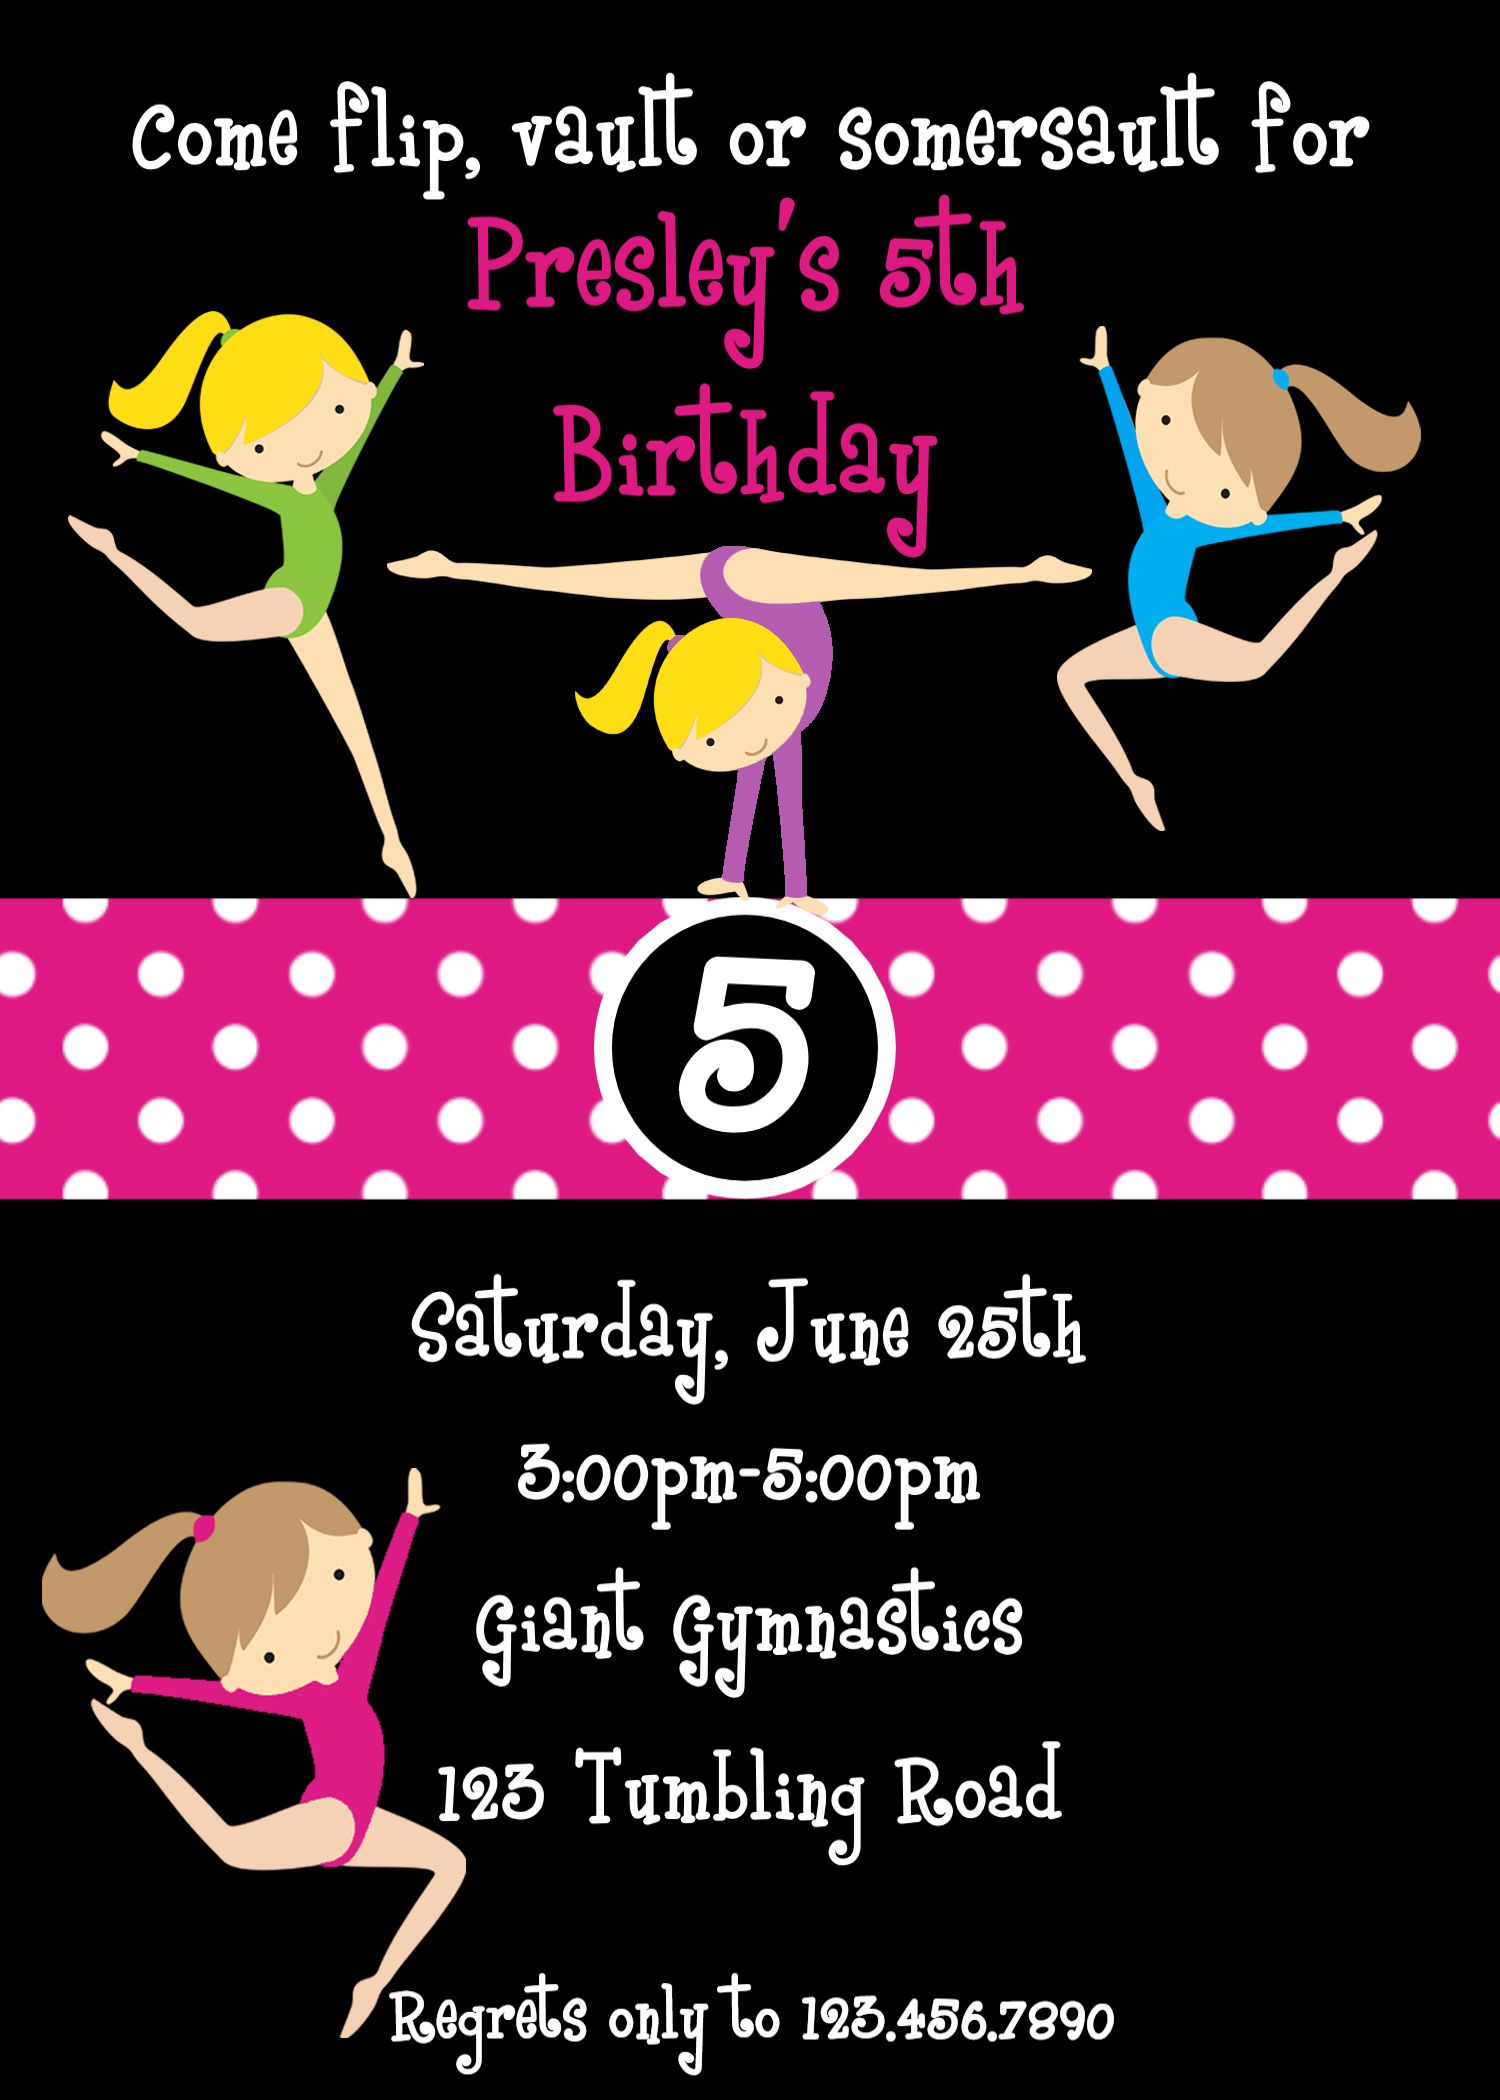 Marvellous gymnastics party invitation wording and gymnastics party marvellous gymnastics party invitation wording and gymnastics party invitations for boys stopboris Choice Image